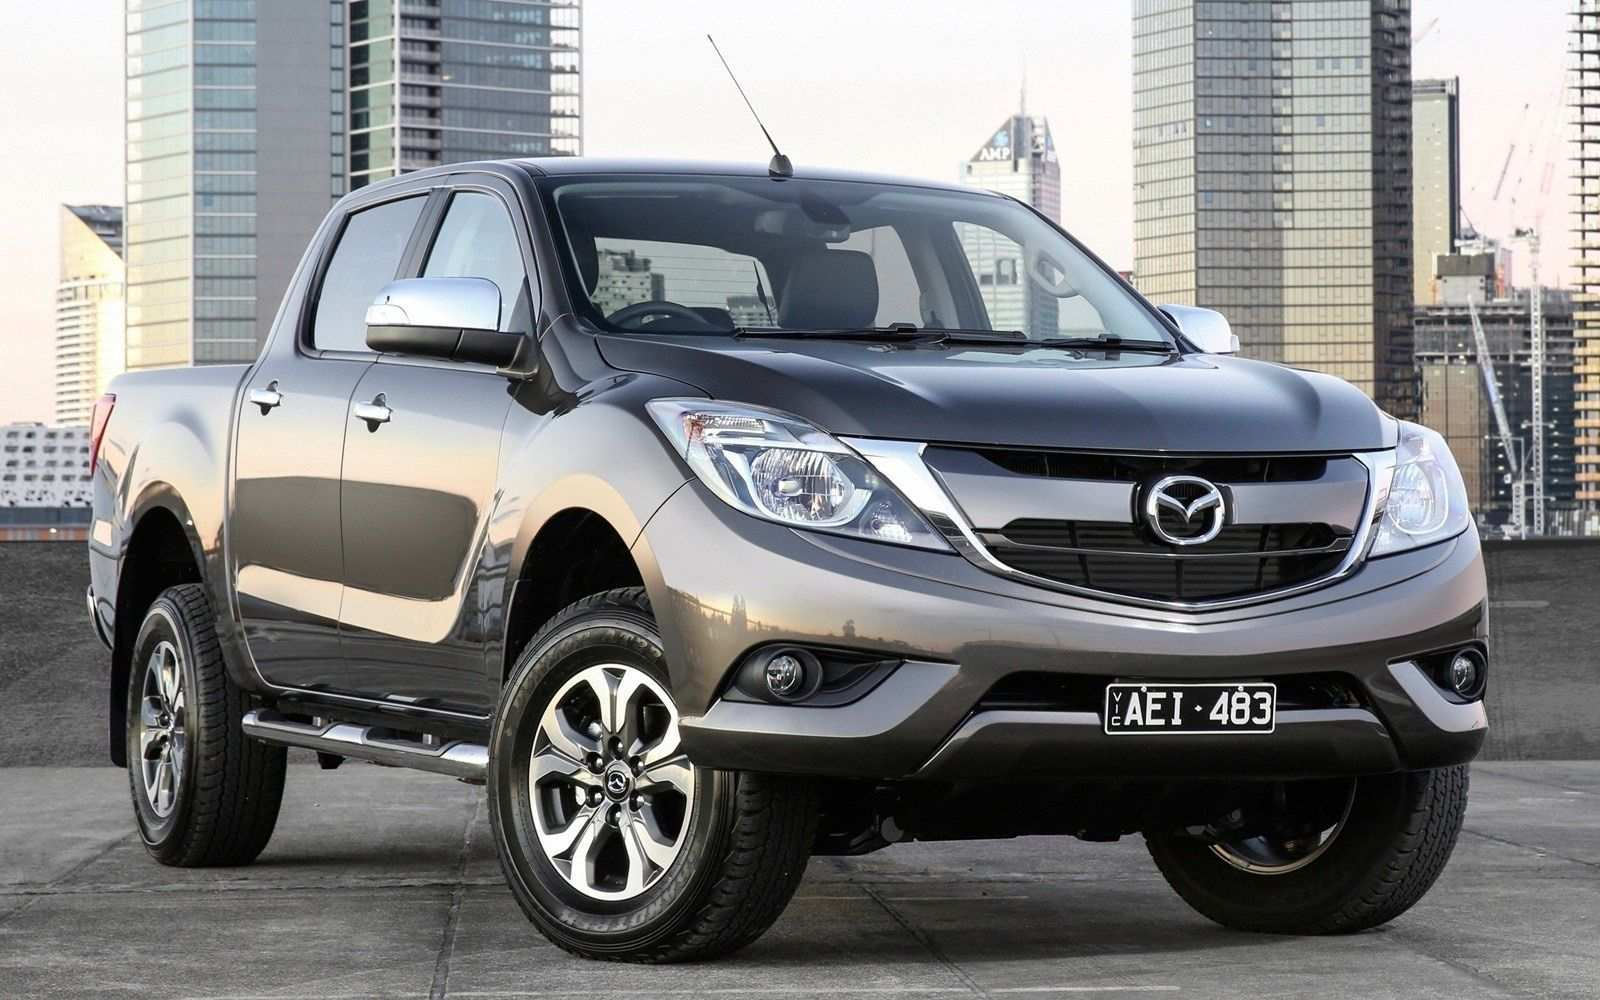 16 Gallery of Mazda Bt 50 Pro 2019 Photos for Mazda Bt 50 Pro 2019